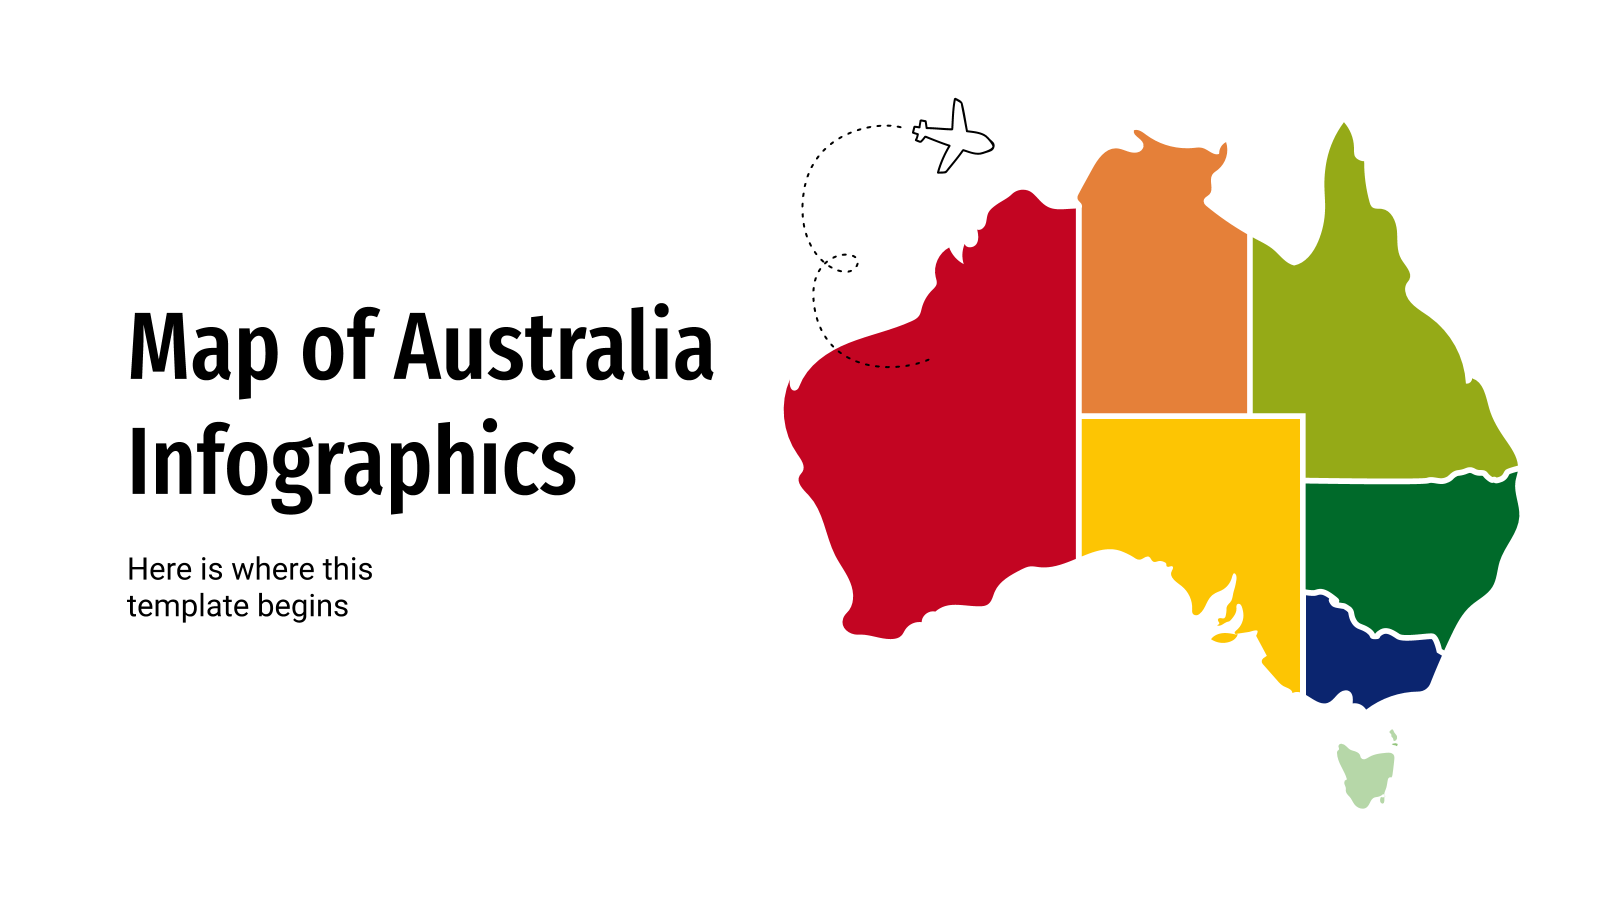 Map of Australia Infographics presentation template